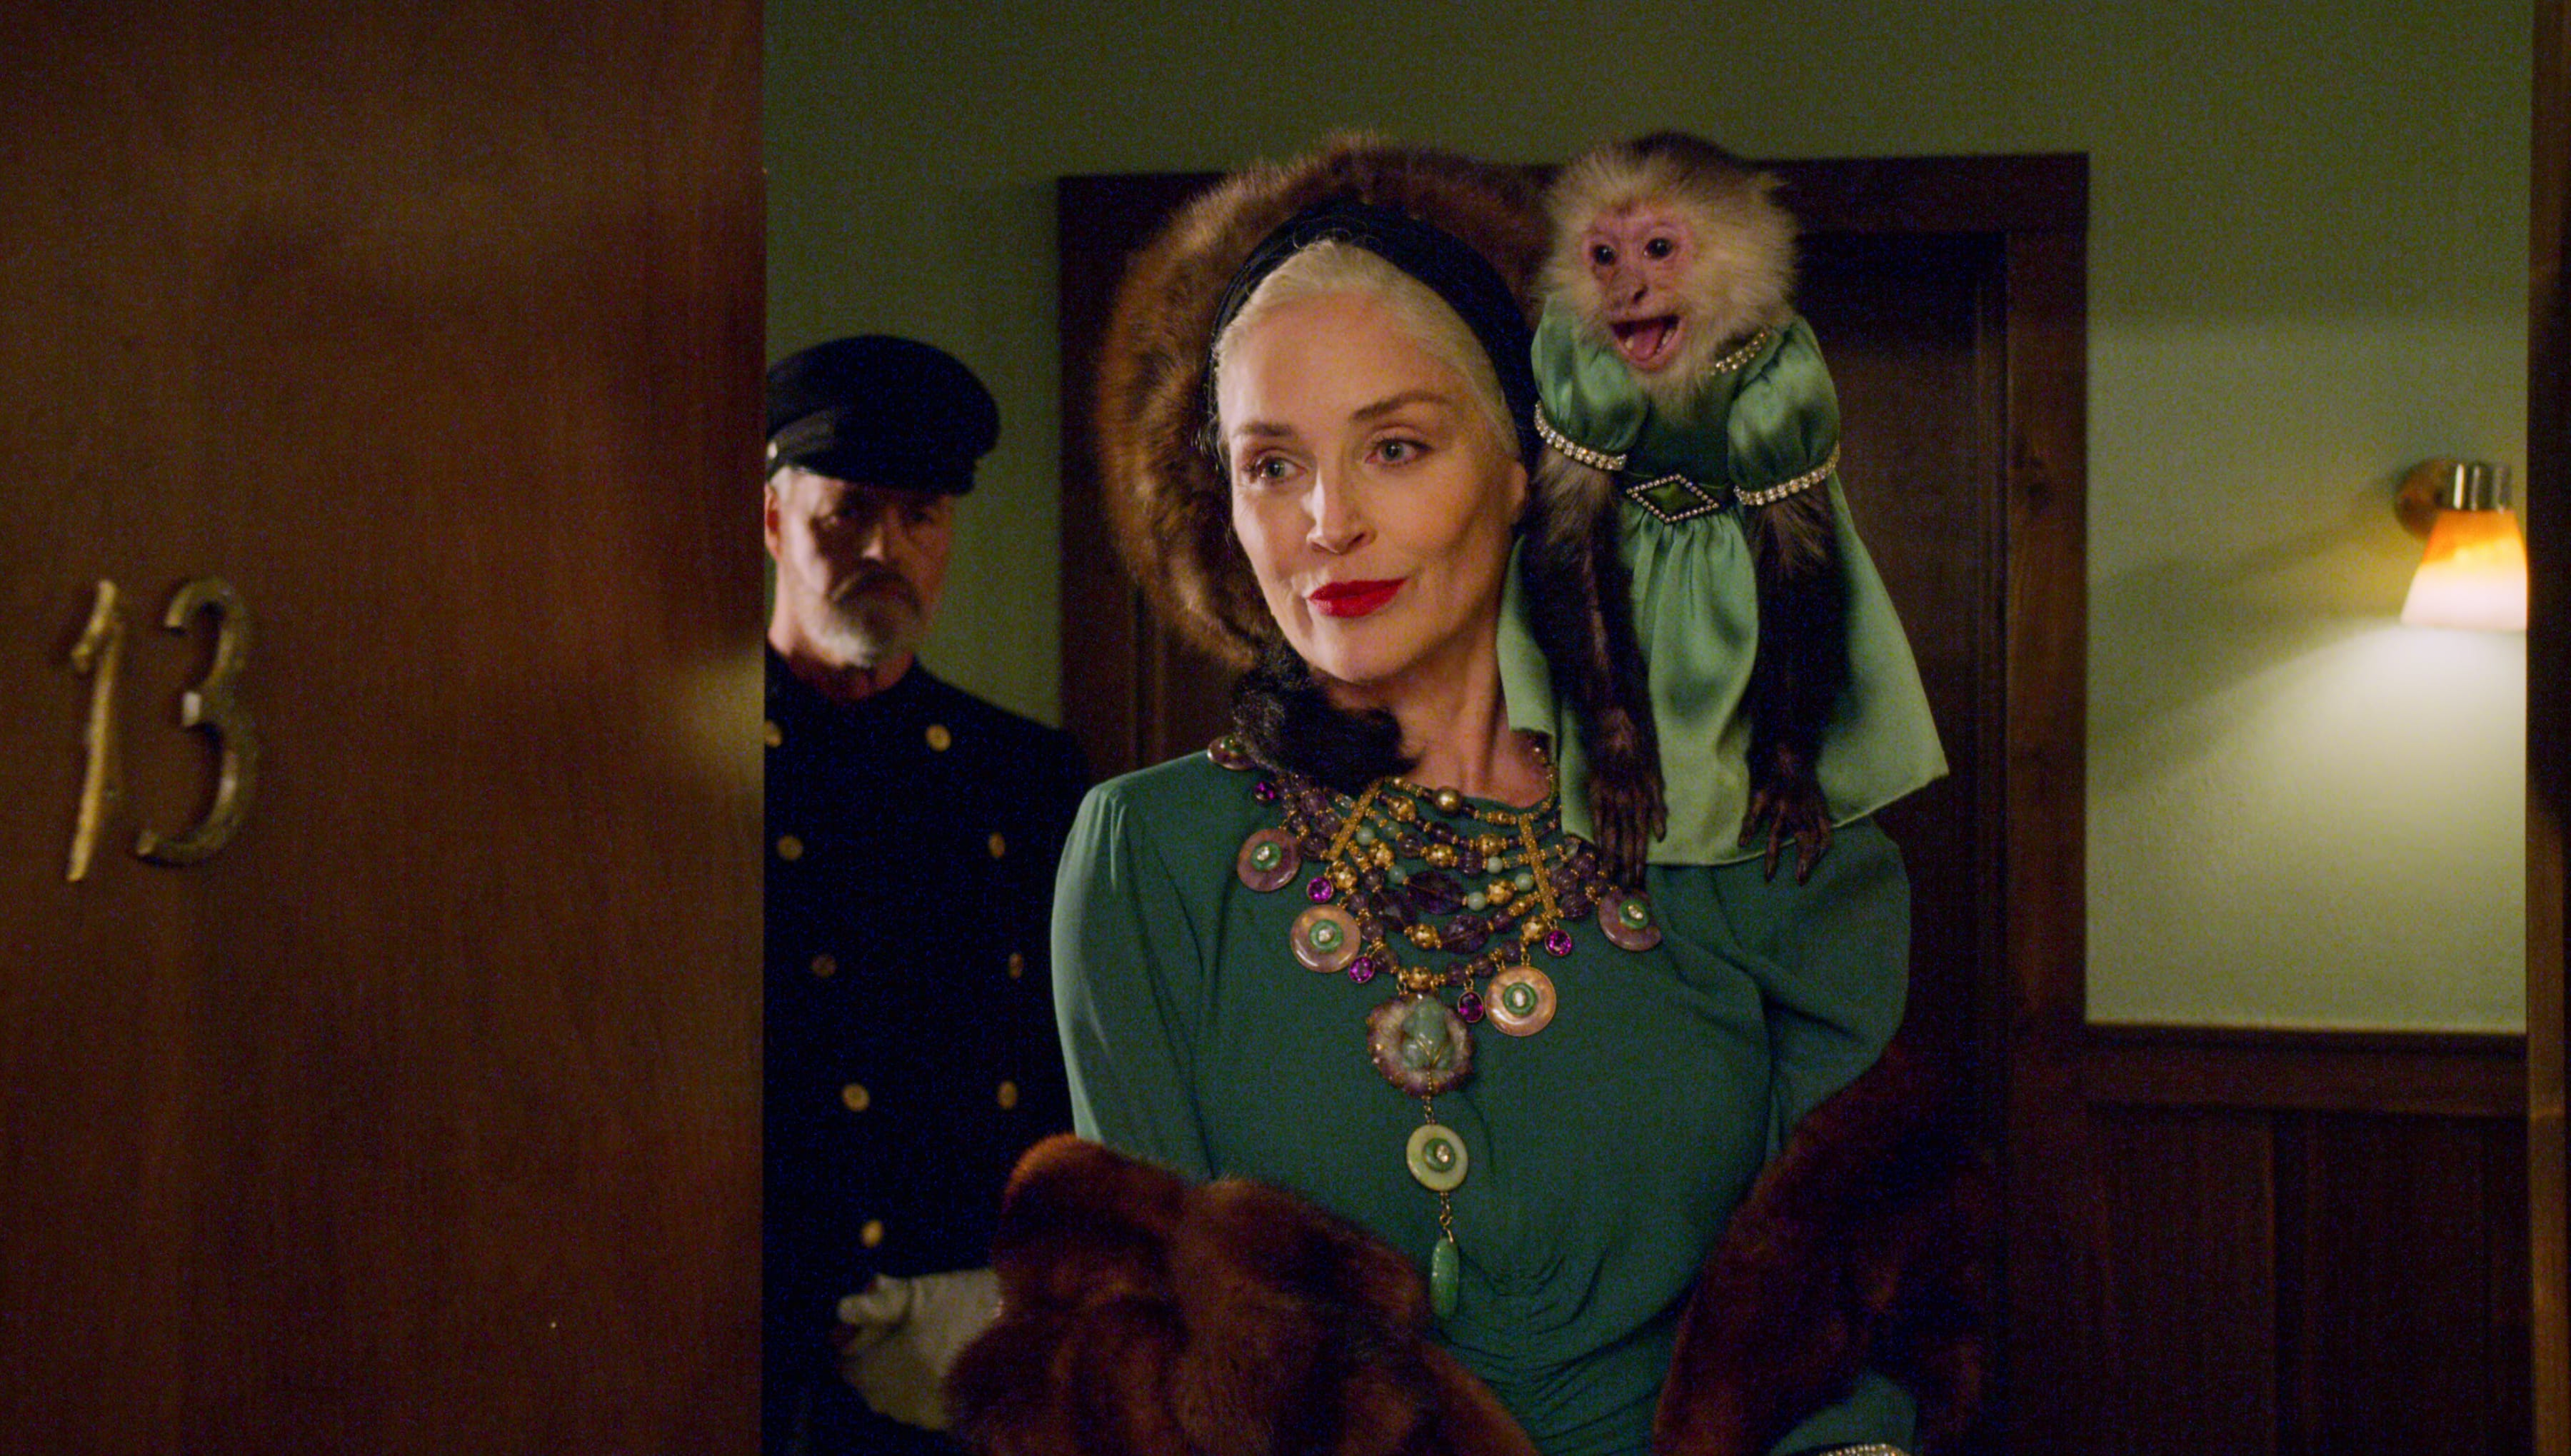 Lenore Osgood is pictured in a green dress and furs, all perfectly coordinated to match the monkey perched on her shoulder.